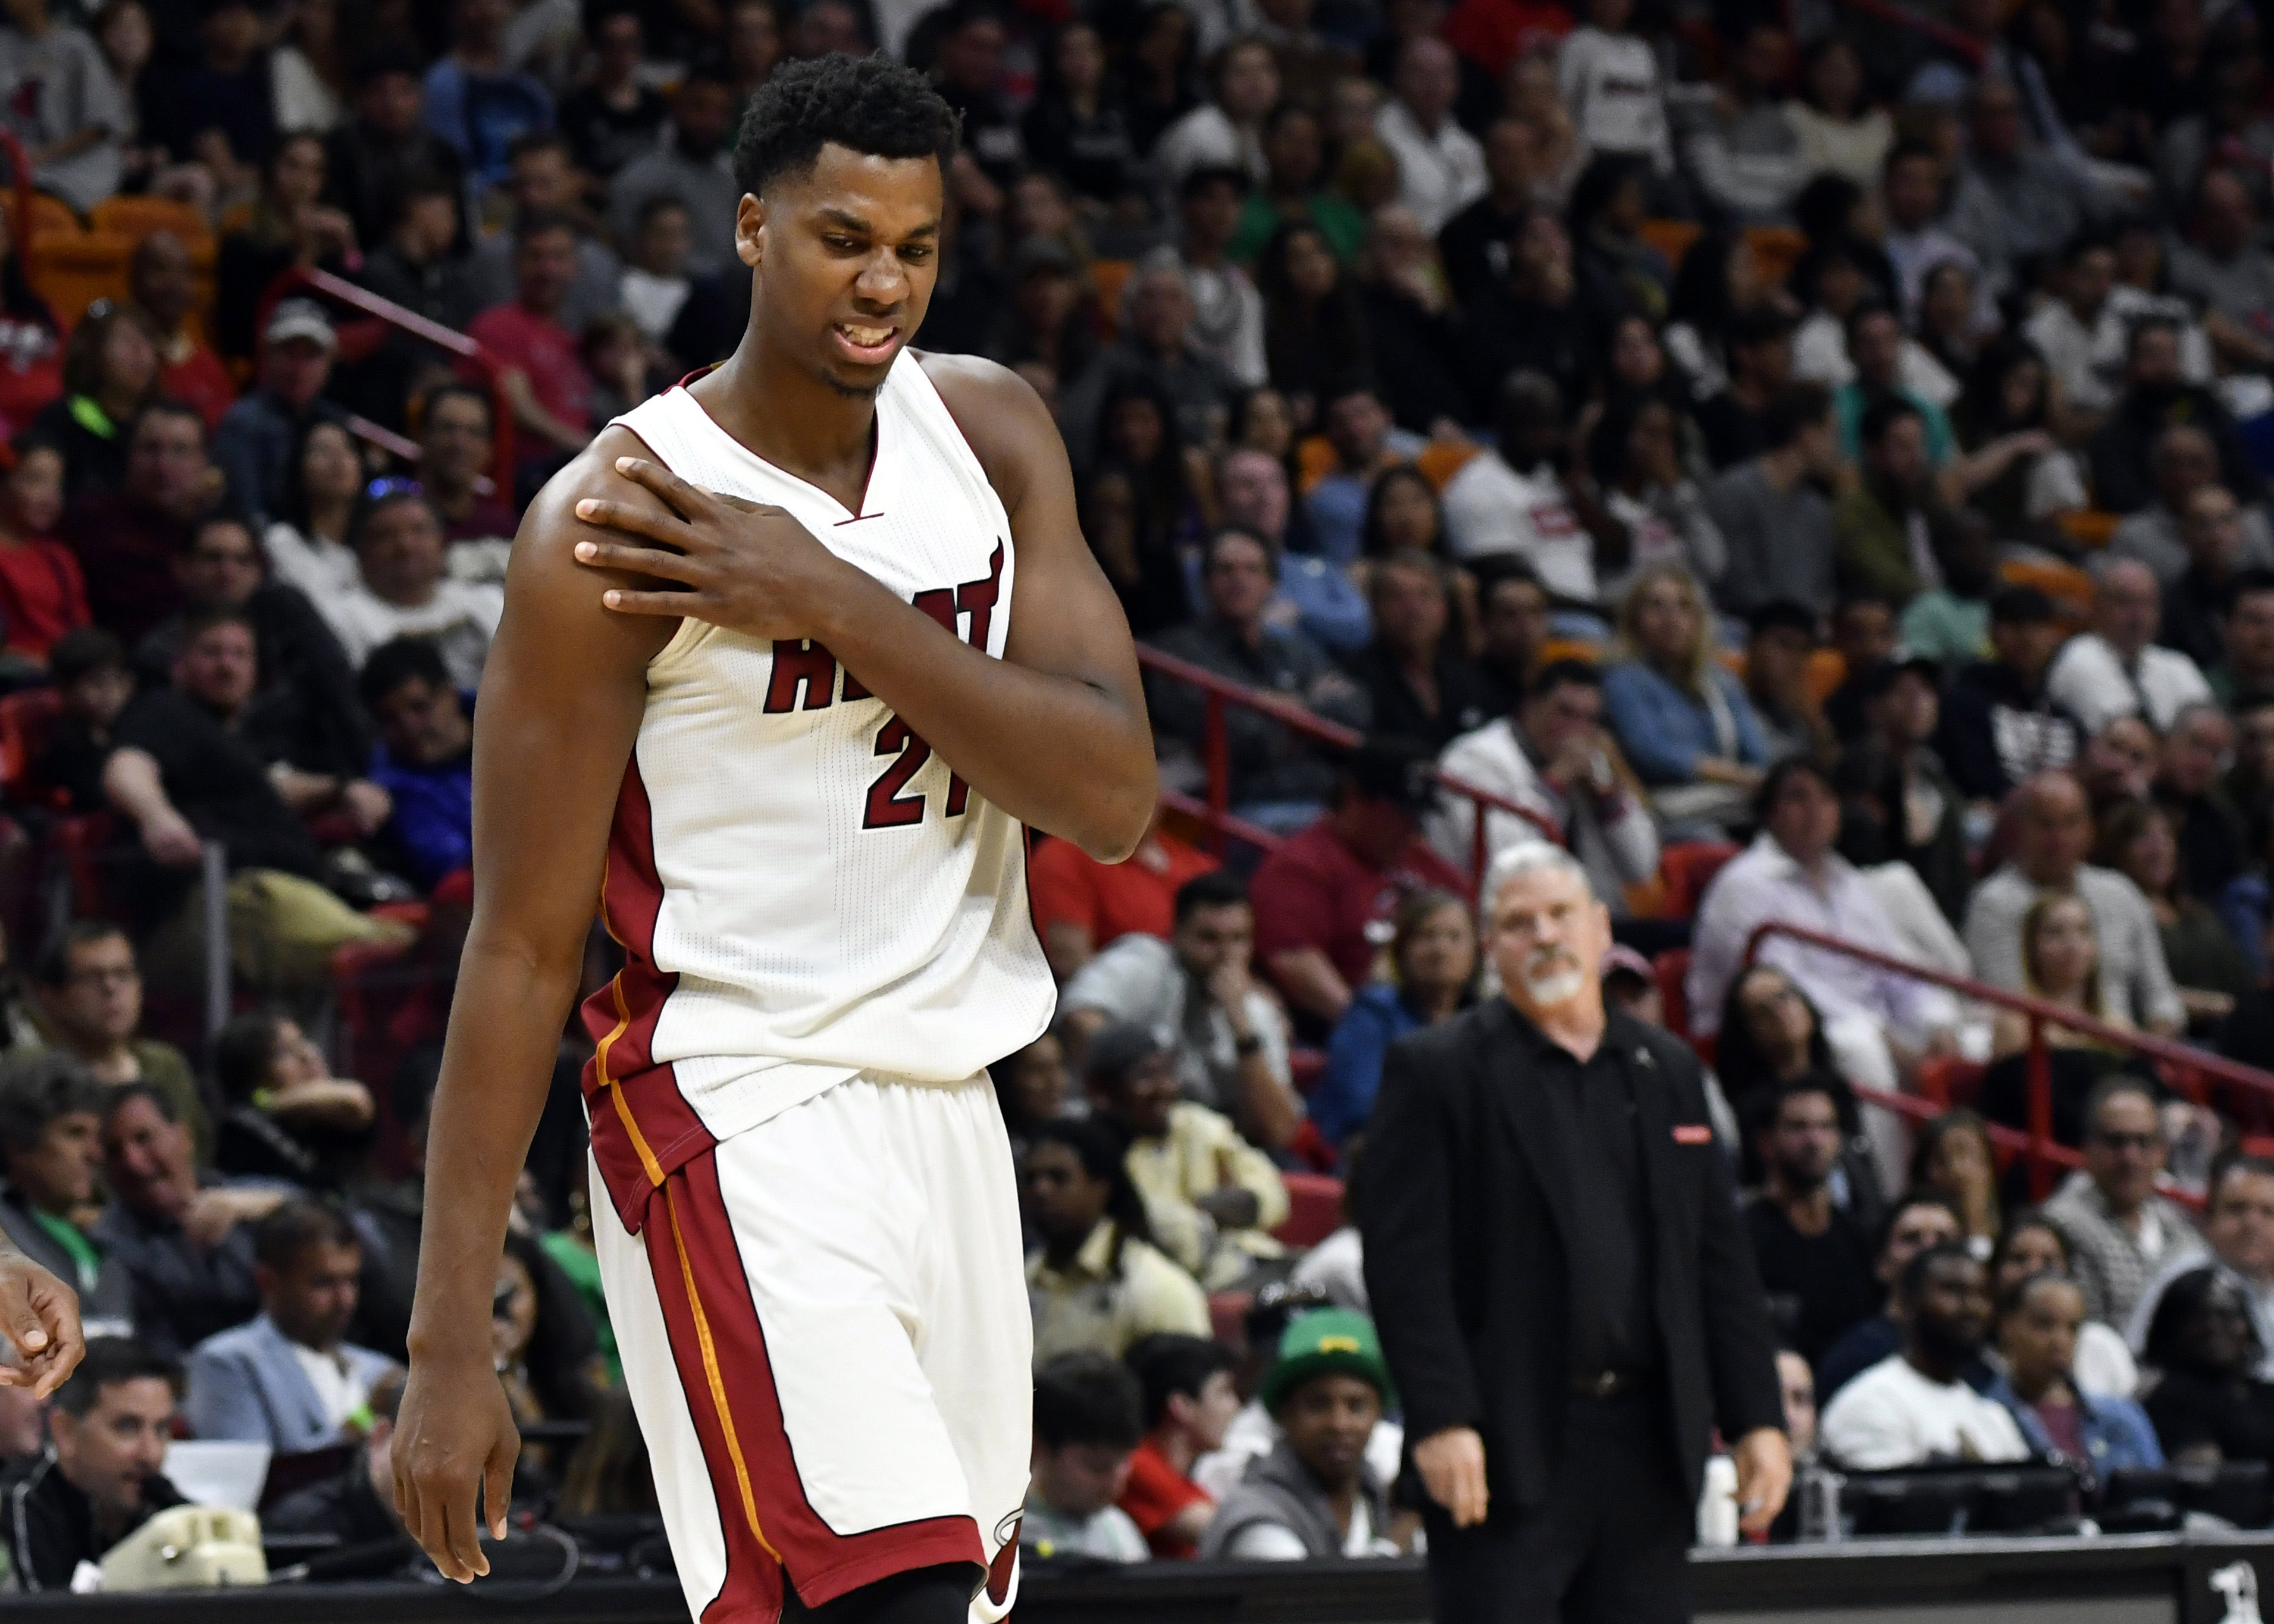 Miami heat updated news - Miami Heat News Rumors 9951803 Nba Minnesota Timberwolves At Miami Heat The Latest Miami Heat